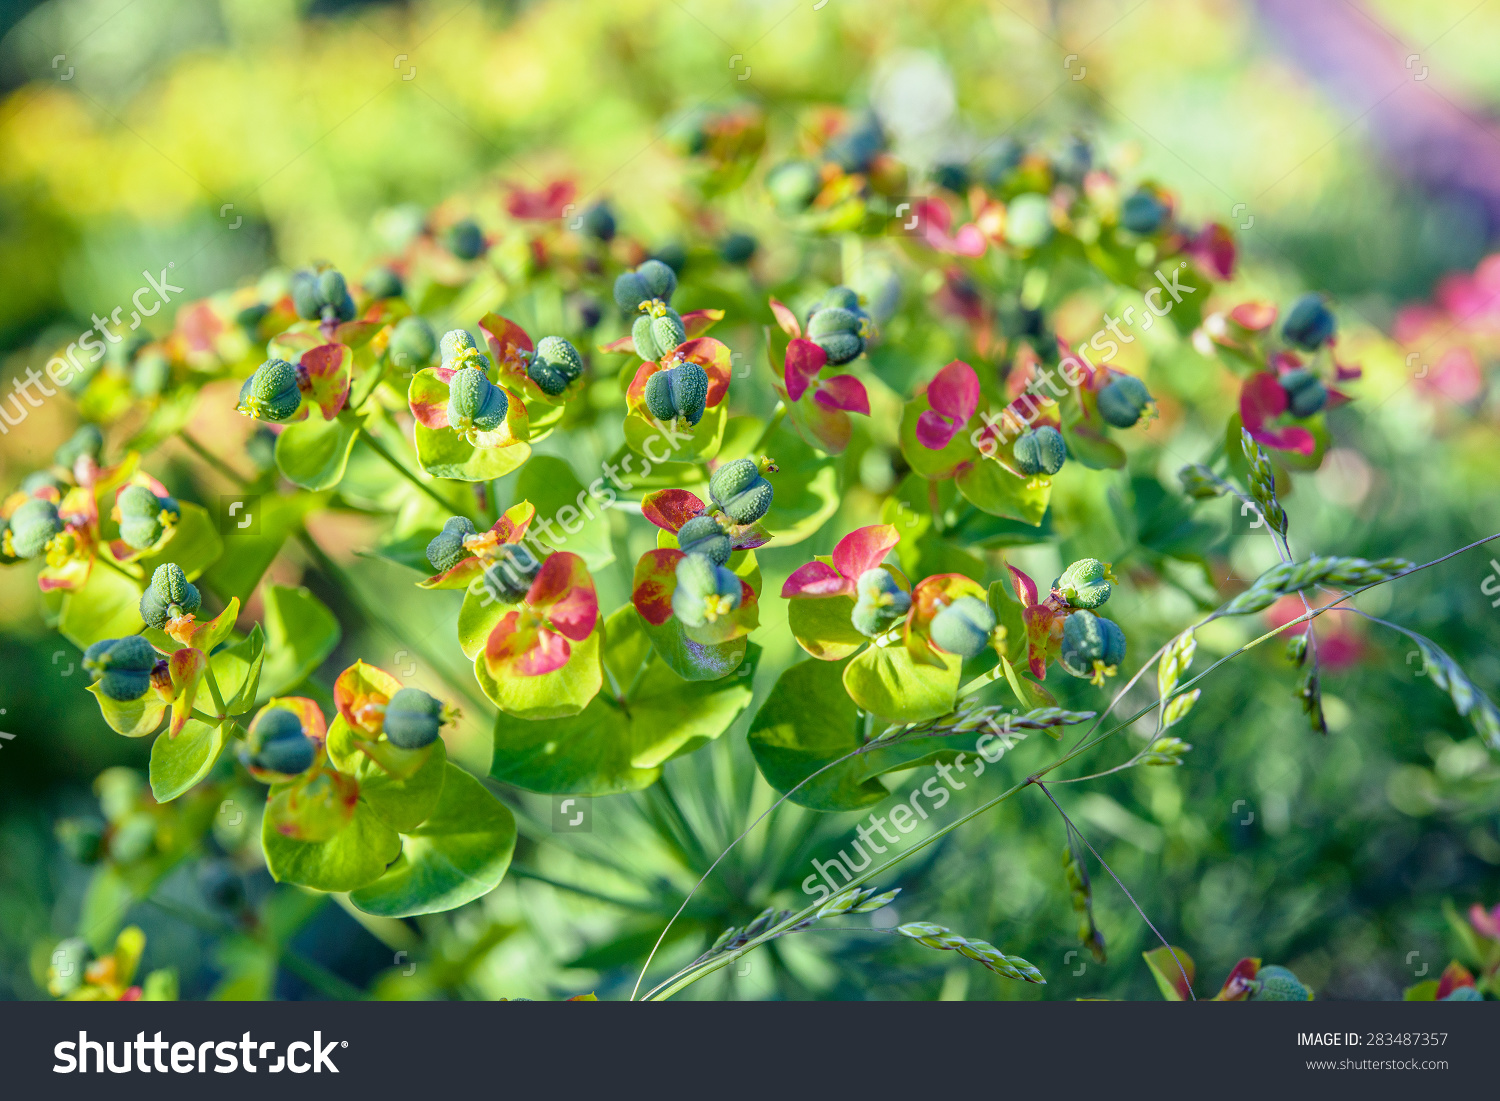 Euphorbia Cyparissias, The Cypress Spurge, Is A Species Of Plant.